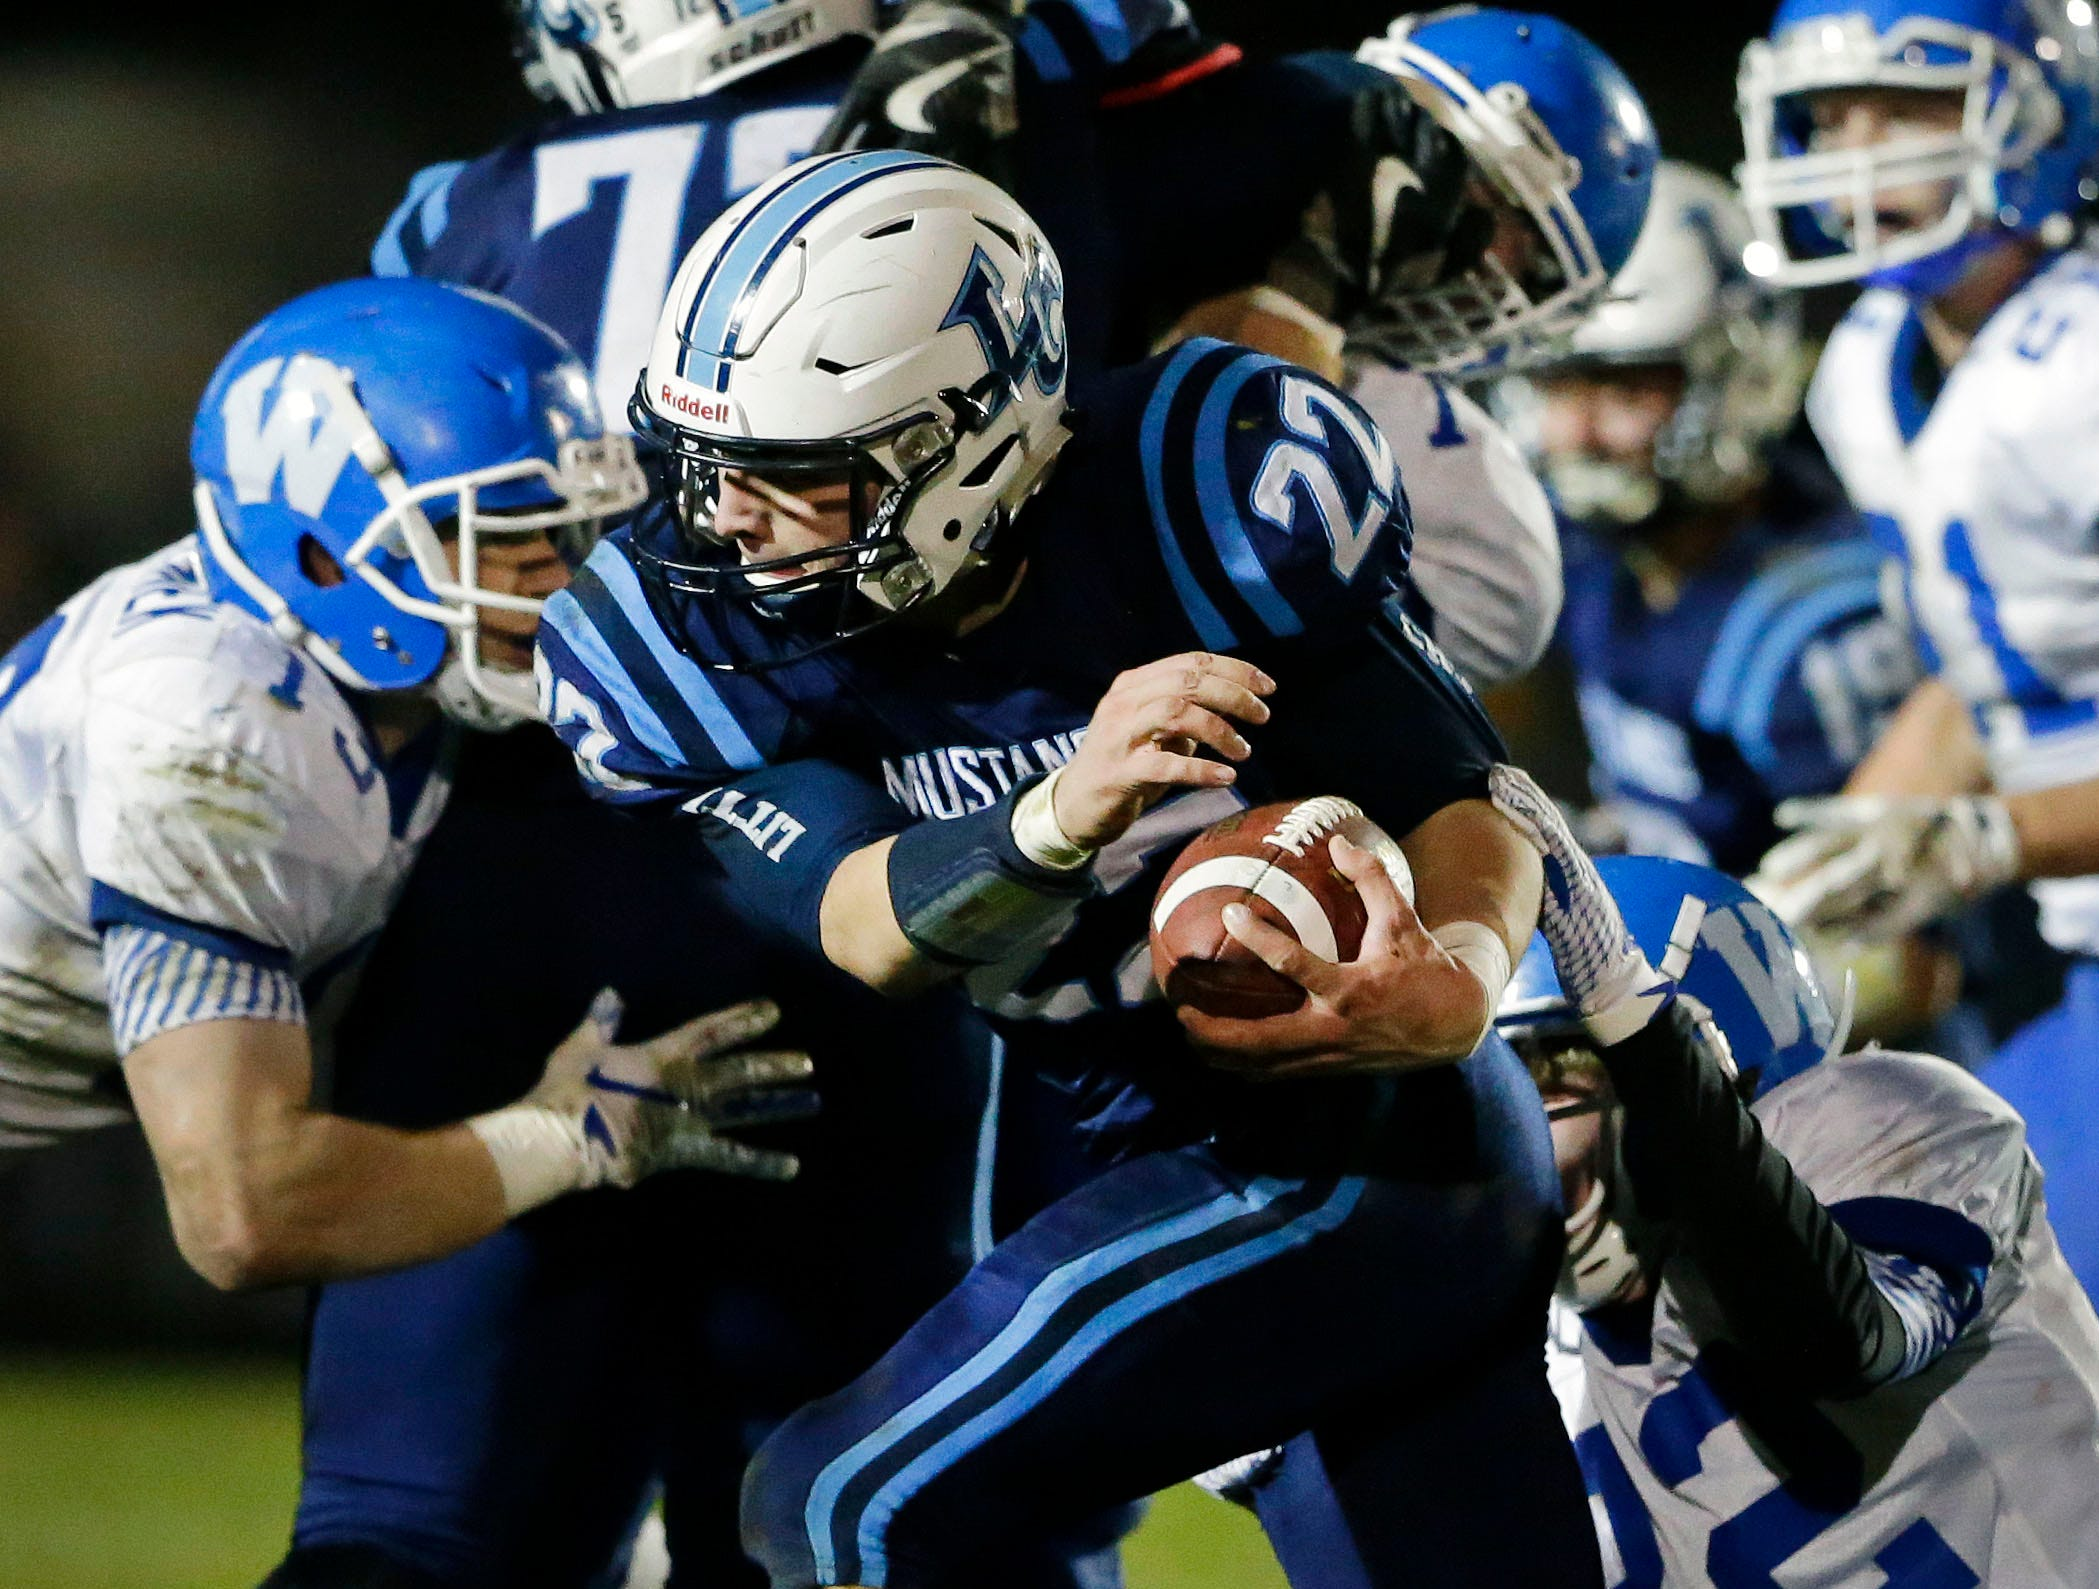 Bryce Schumacher of Little Chute carries the ball against Wrightstown in a WIAA Division 4 Level 3 playoff game Friday, November 2, 2018, at Fitzpatrick Field in Little Chute, Wis.Ron Page/USA TODAY NETWORK-Wisconsin